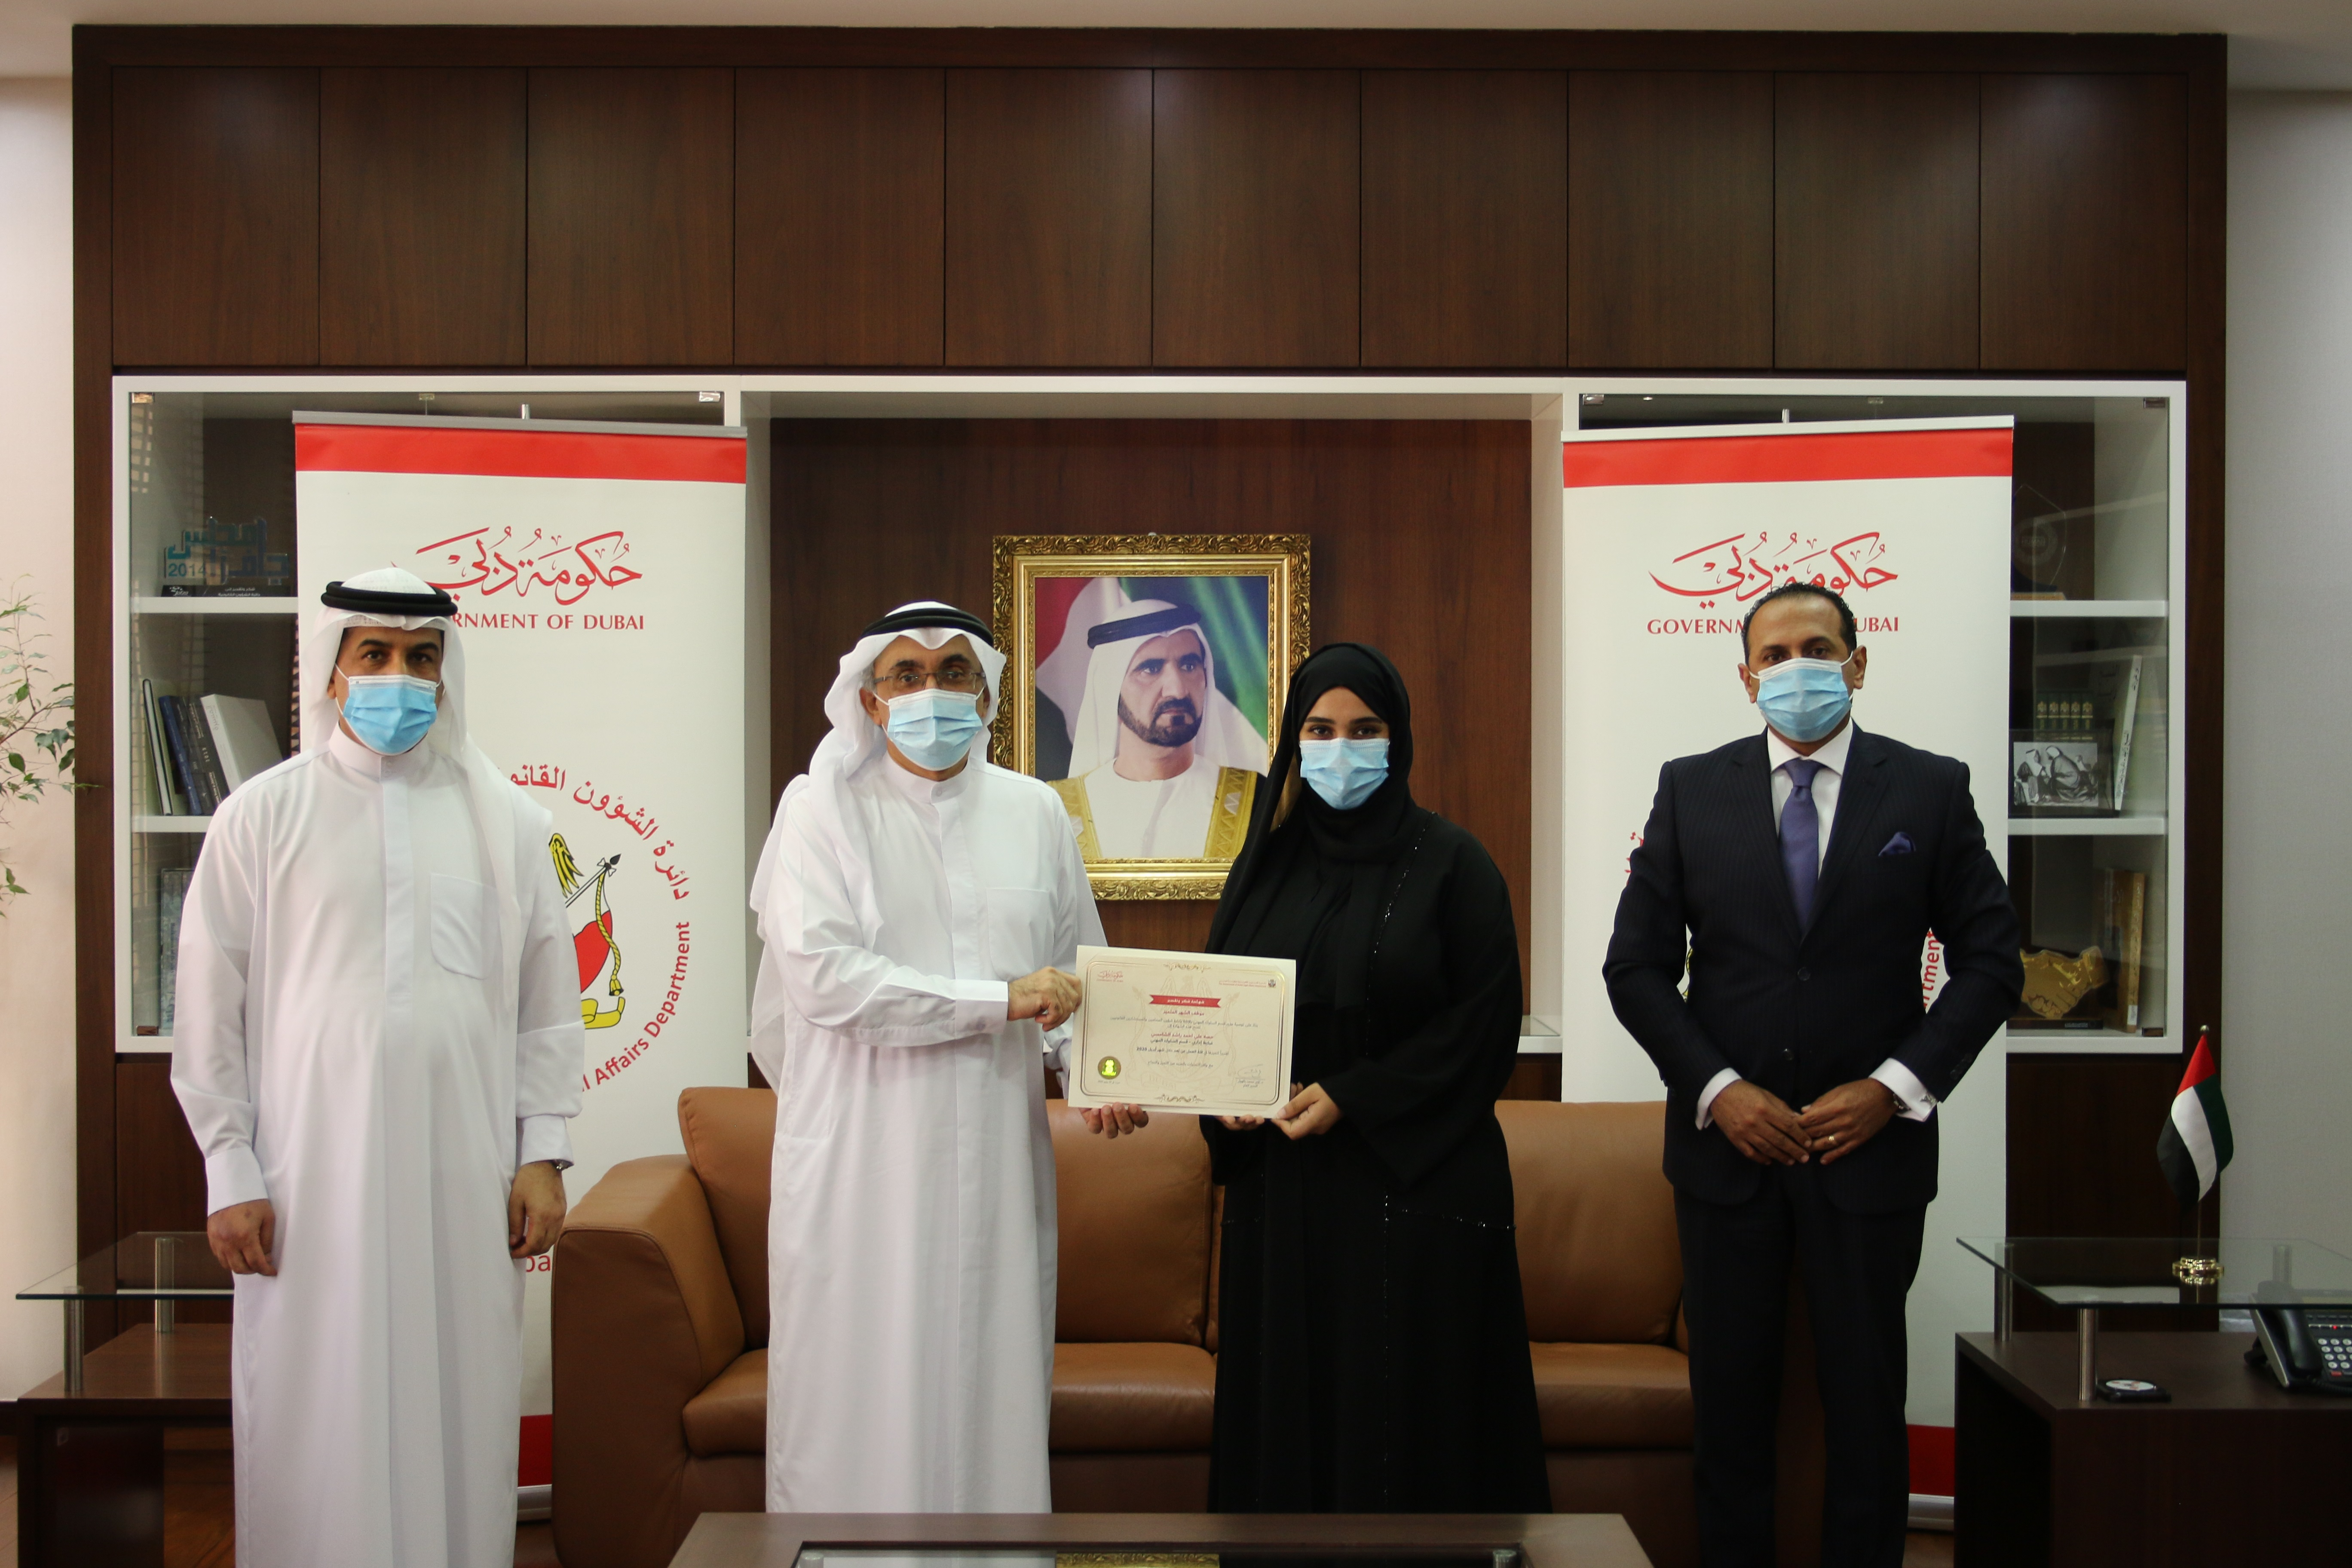 His Excellency Dr. Lowai Belhoul, Director General of Legal Affairs Department, honoured a number of distinguished employees to foster a spirit of excellence and positive competition.